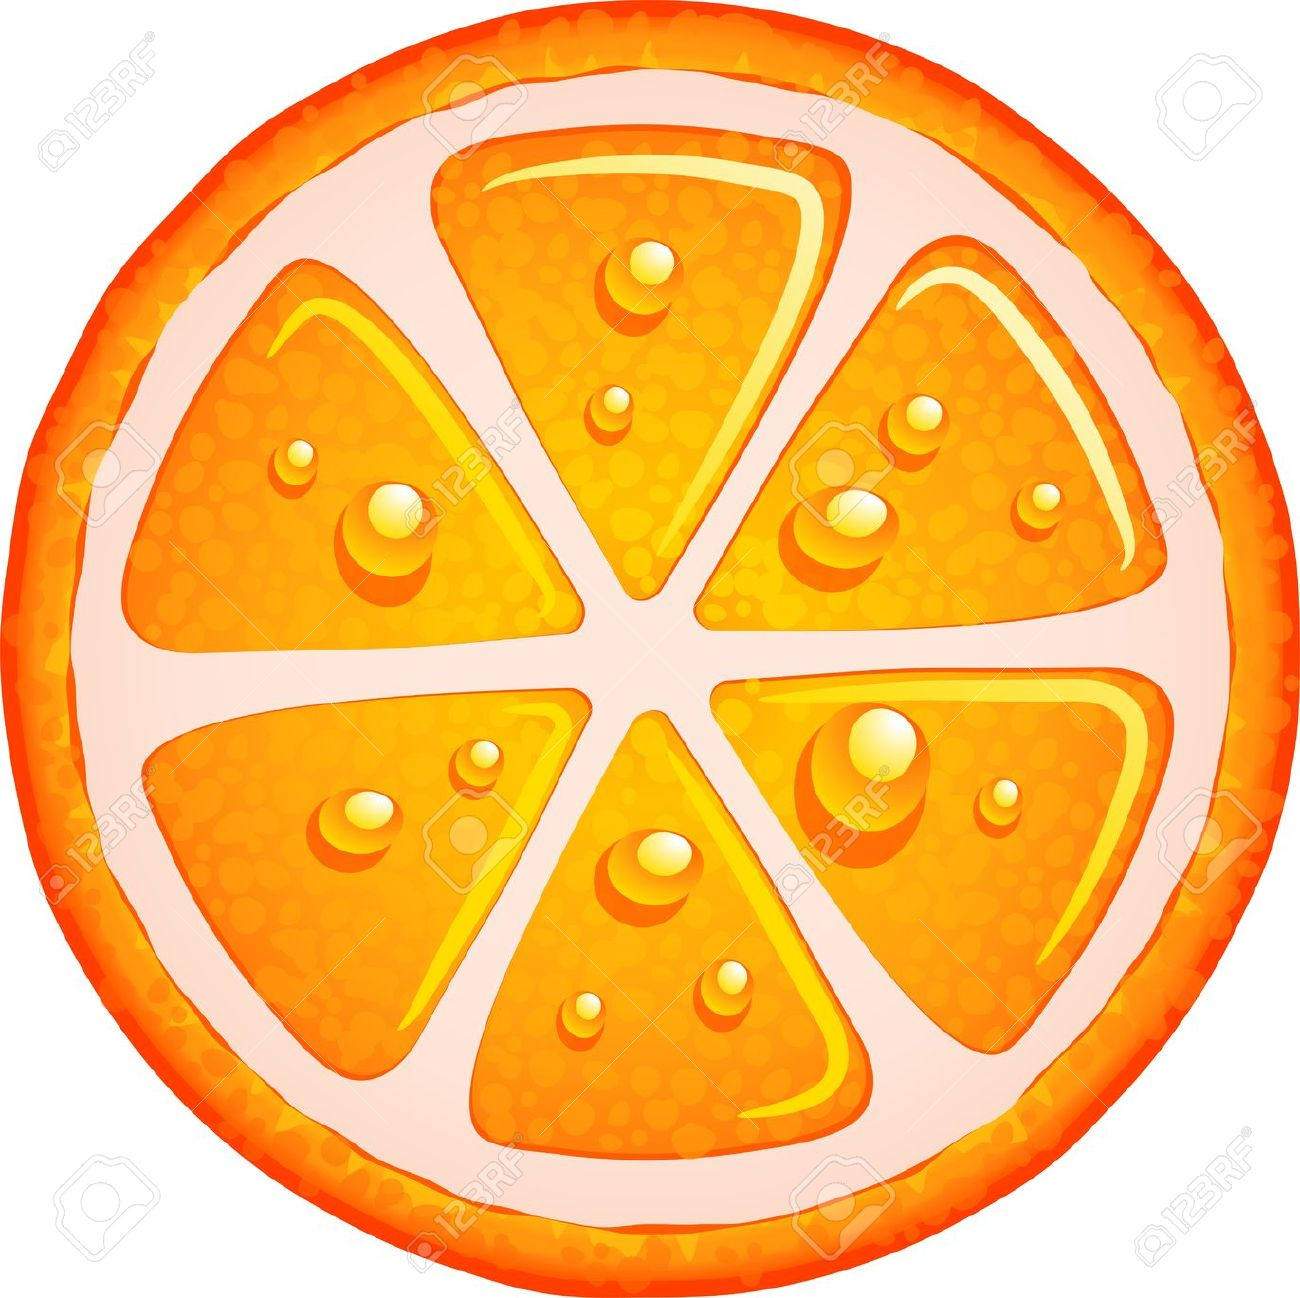 1300x1298 Clip Art Orange Slice Clip Art